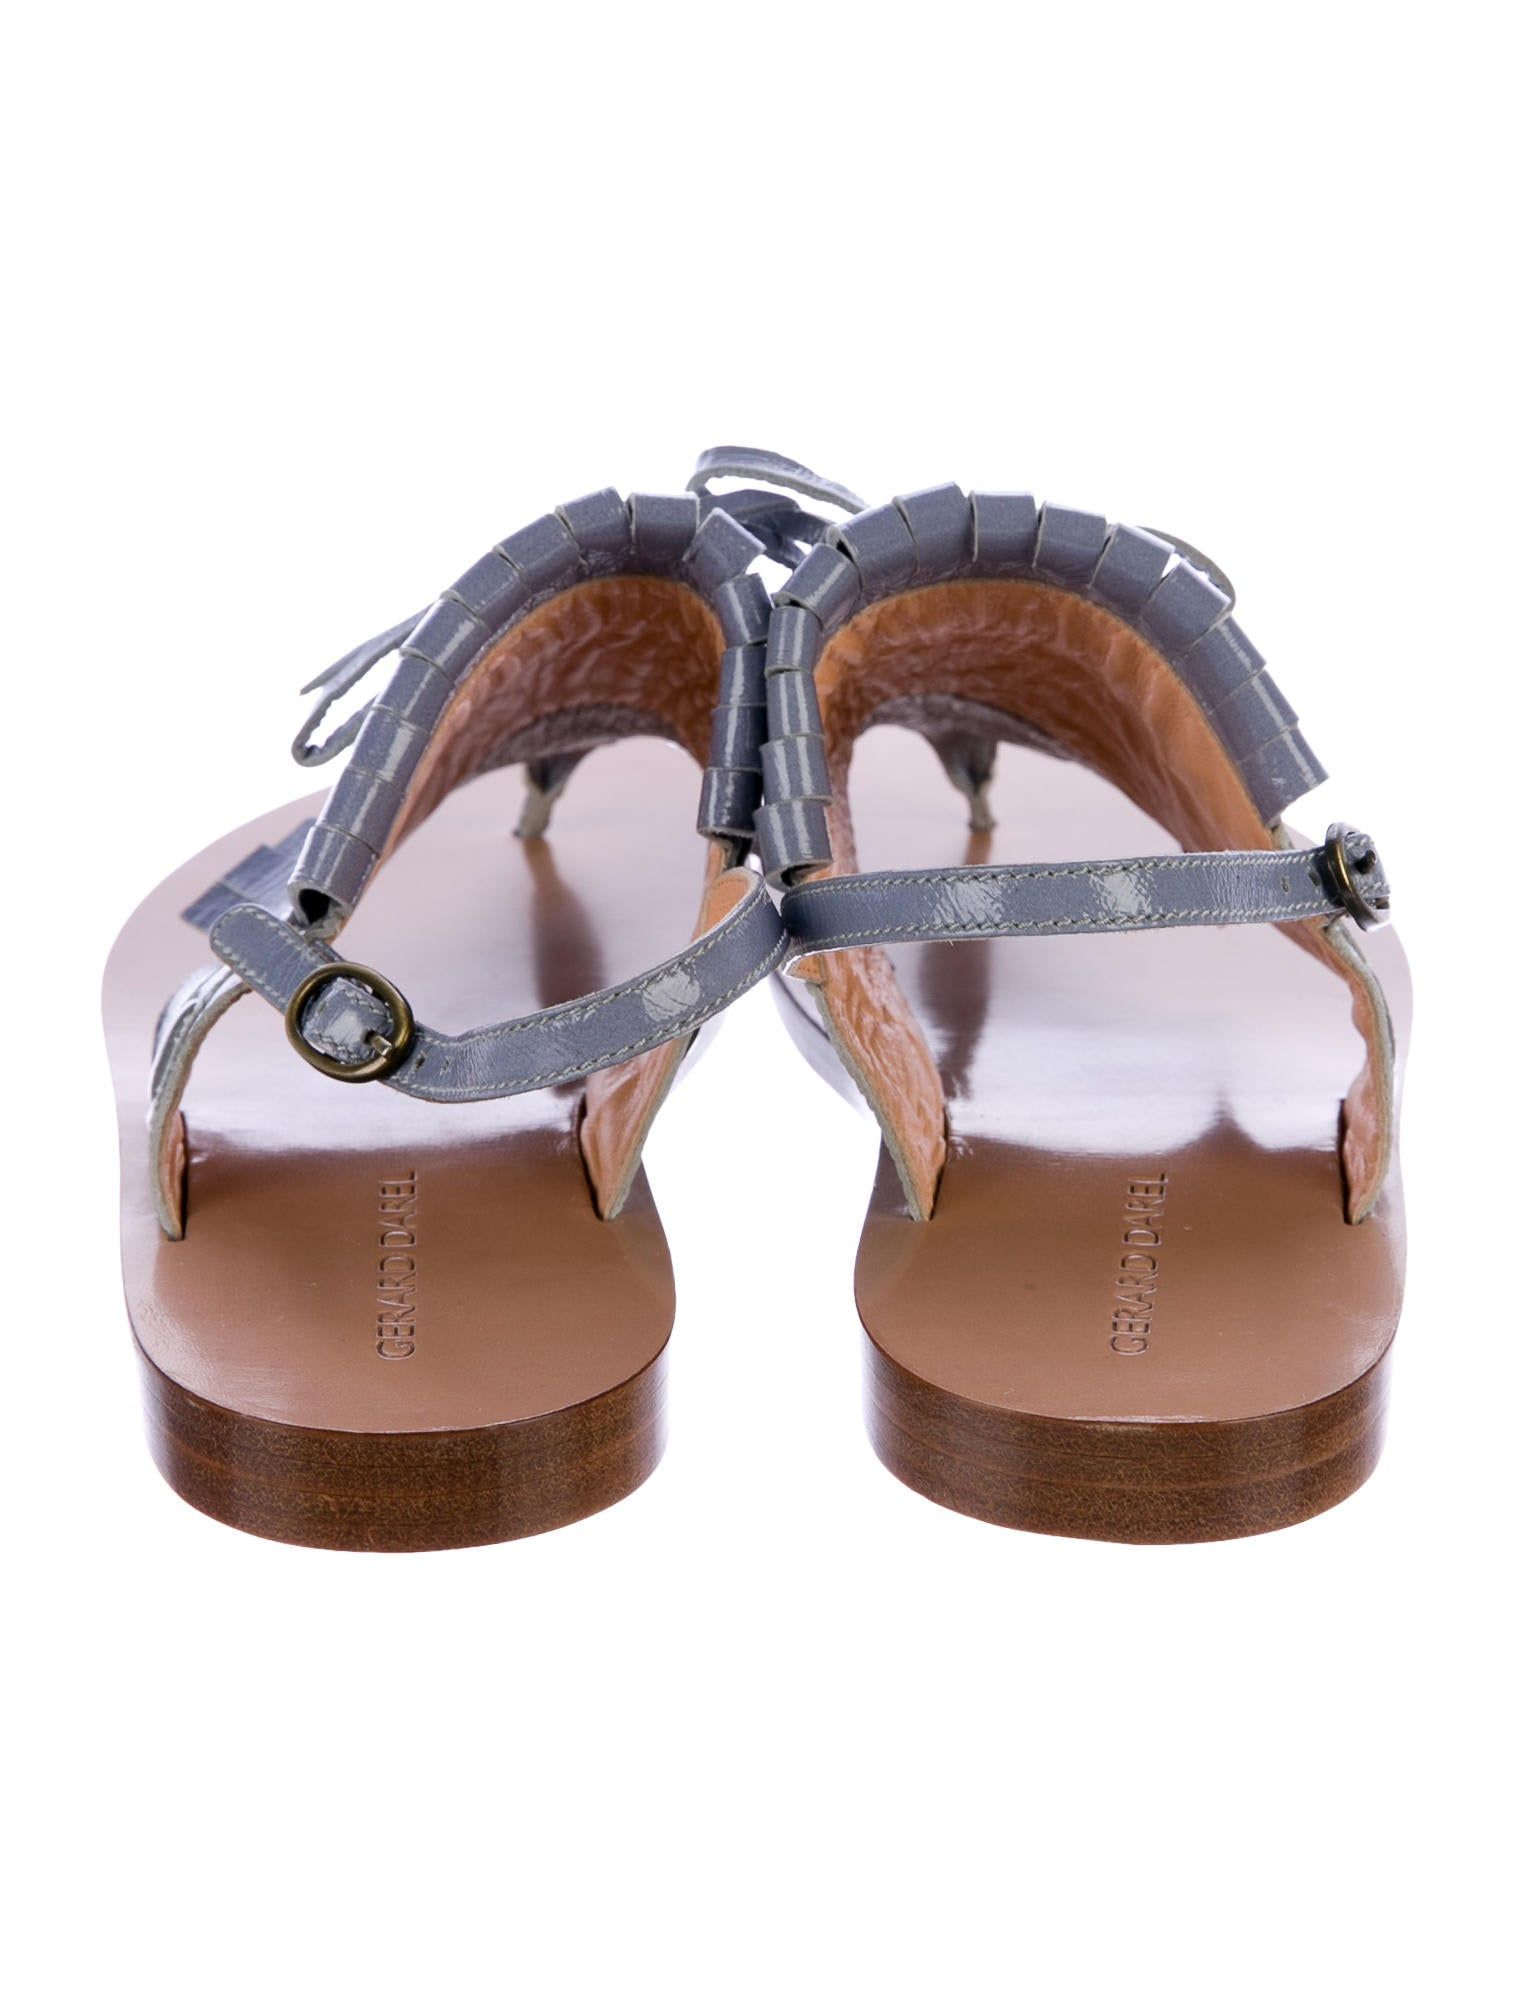 Inexpensive cheap price free shipping limited edition Gerard Darel Kiltie Thong Sandals 8tXCZ0xf